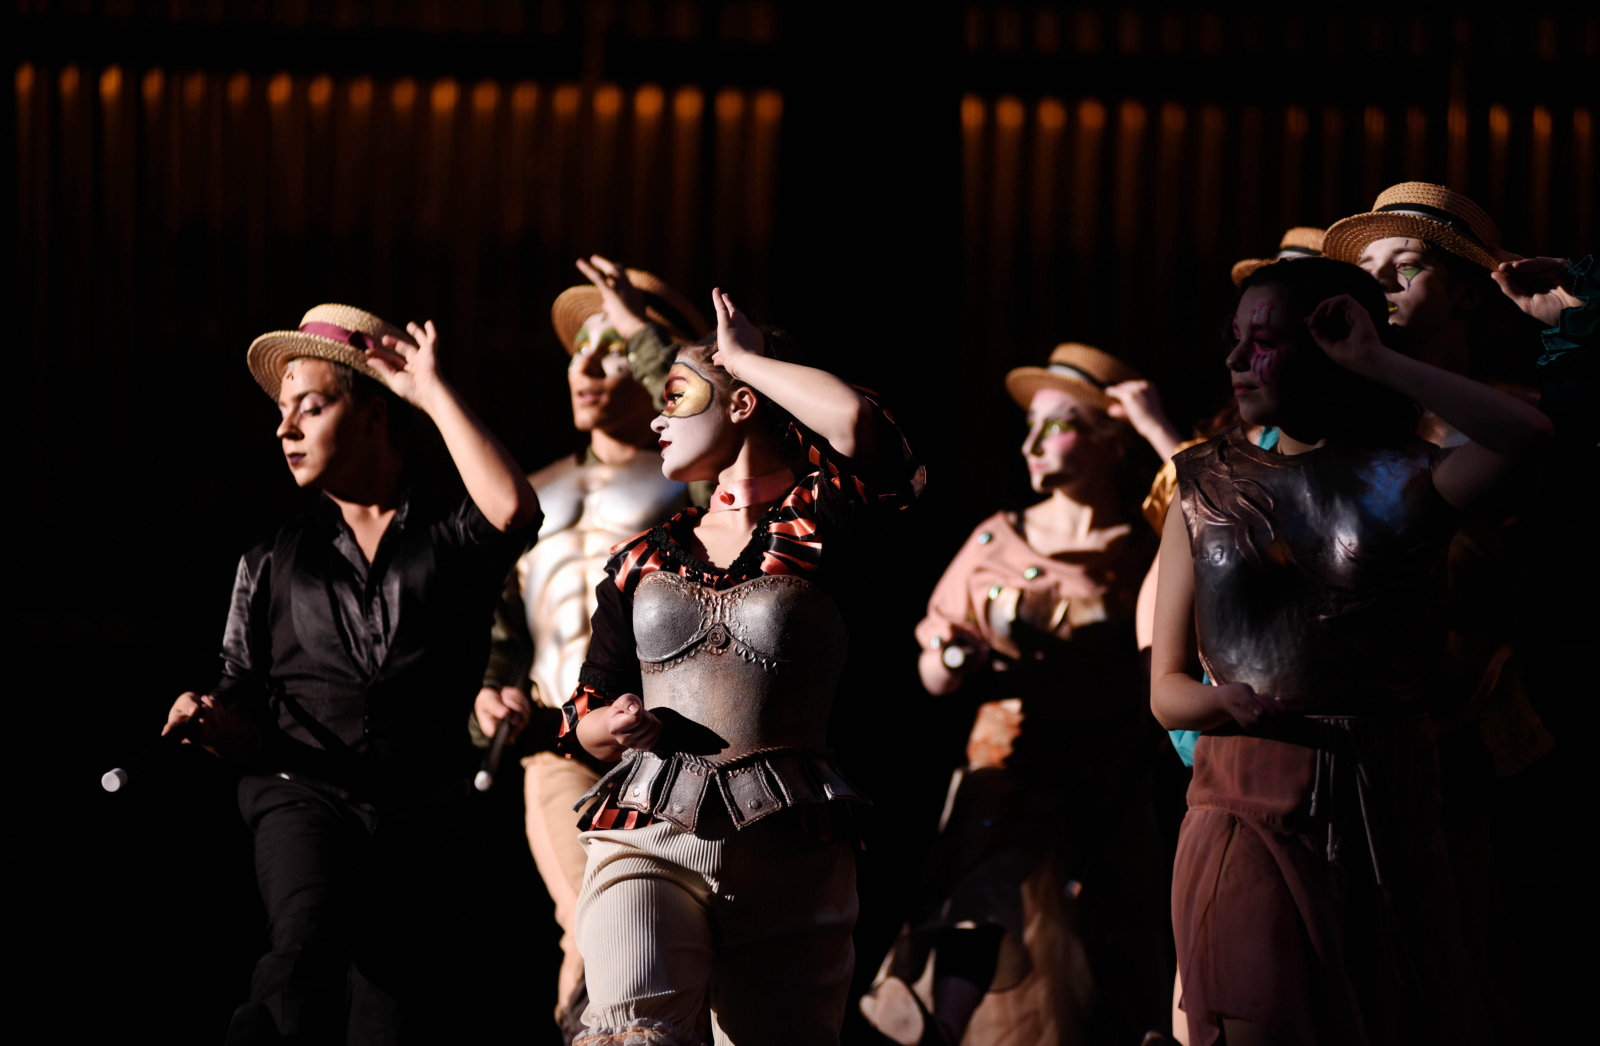 Broadway Camp students perform during a dress rehearsal for Pippin at Proctors Friday, August 4, 2017.